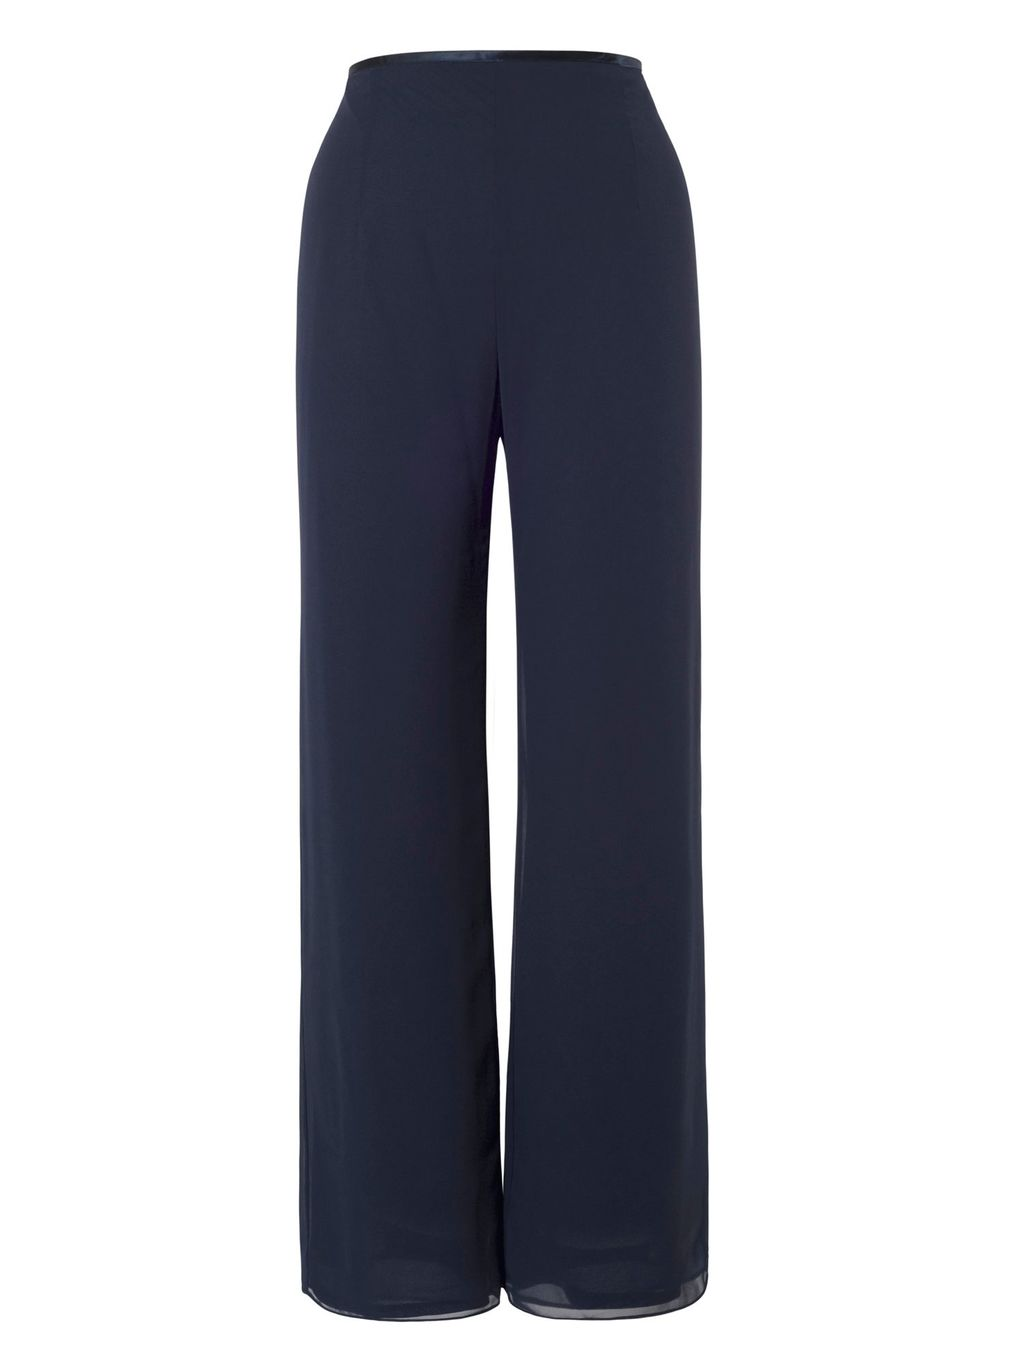 Jersey Lined Chiffon Pant, Navy - length: standard; pattern: plain; waist: high rise; predominant colour: navy; fibres: polyester/polyamide - 100%; fit: straight leg; pattern type: fabric; texture group: jersey - stretchy/drapey; style: standard; occasions: creative work; season: s/s 2016